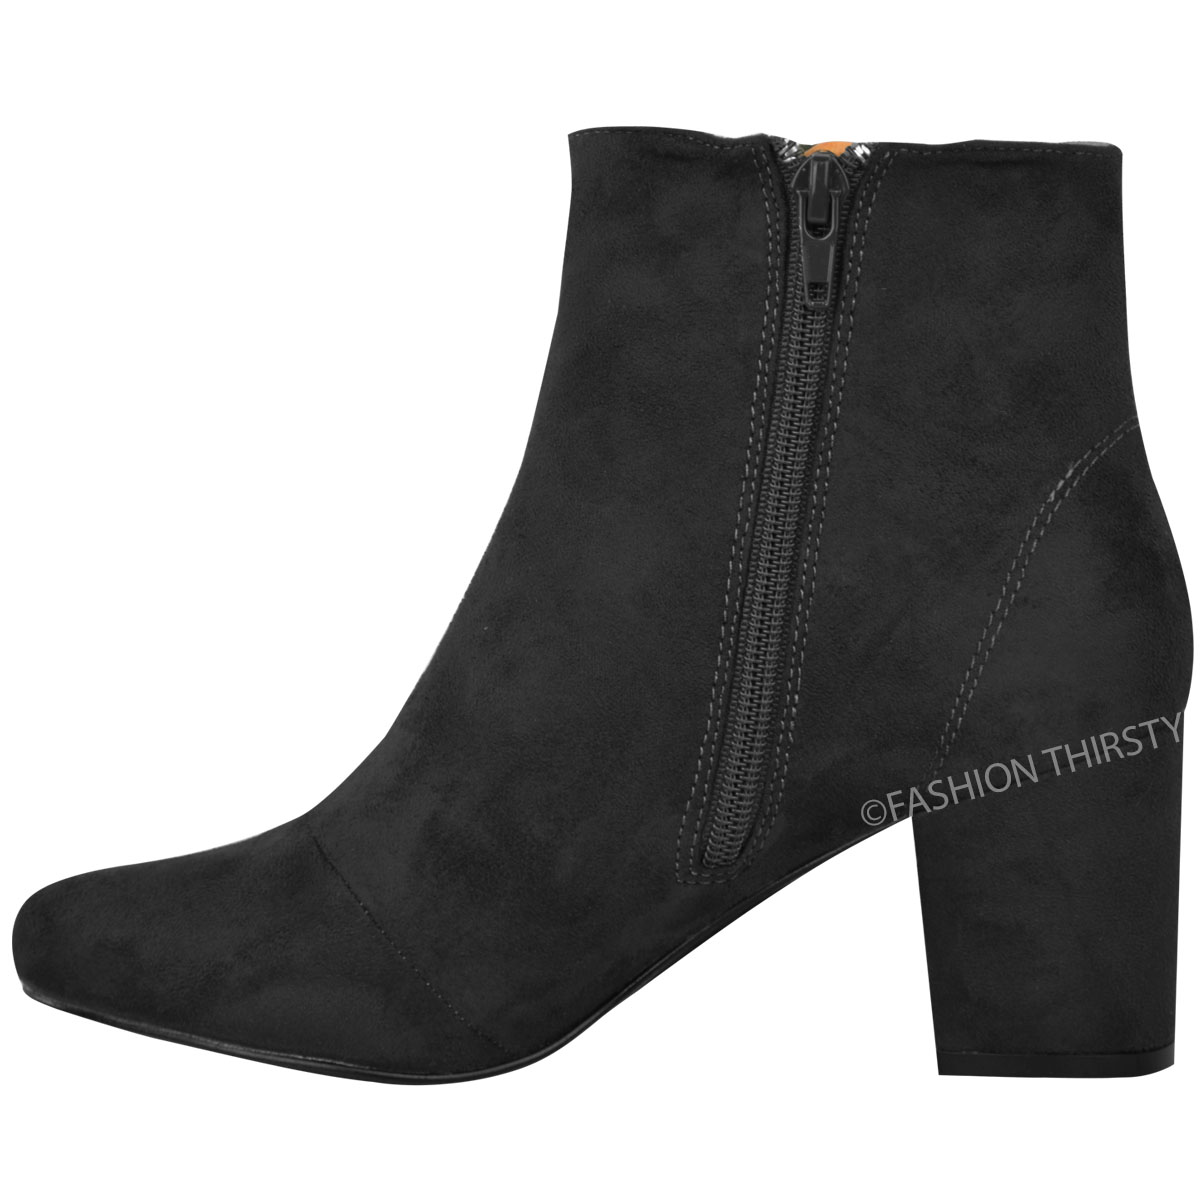 thumbnail 5 - WOMENS-LADIES-LOW-BLOCK-HEEL-CHELSEA-ANKLE-BOOTS-CUT-OUT-LACE-UP-SHOES-NEW-SIZE